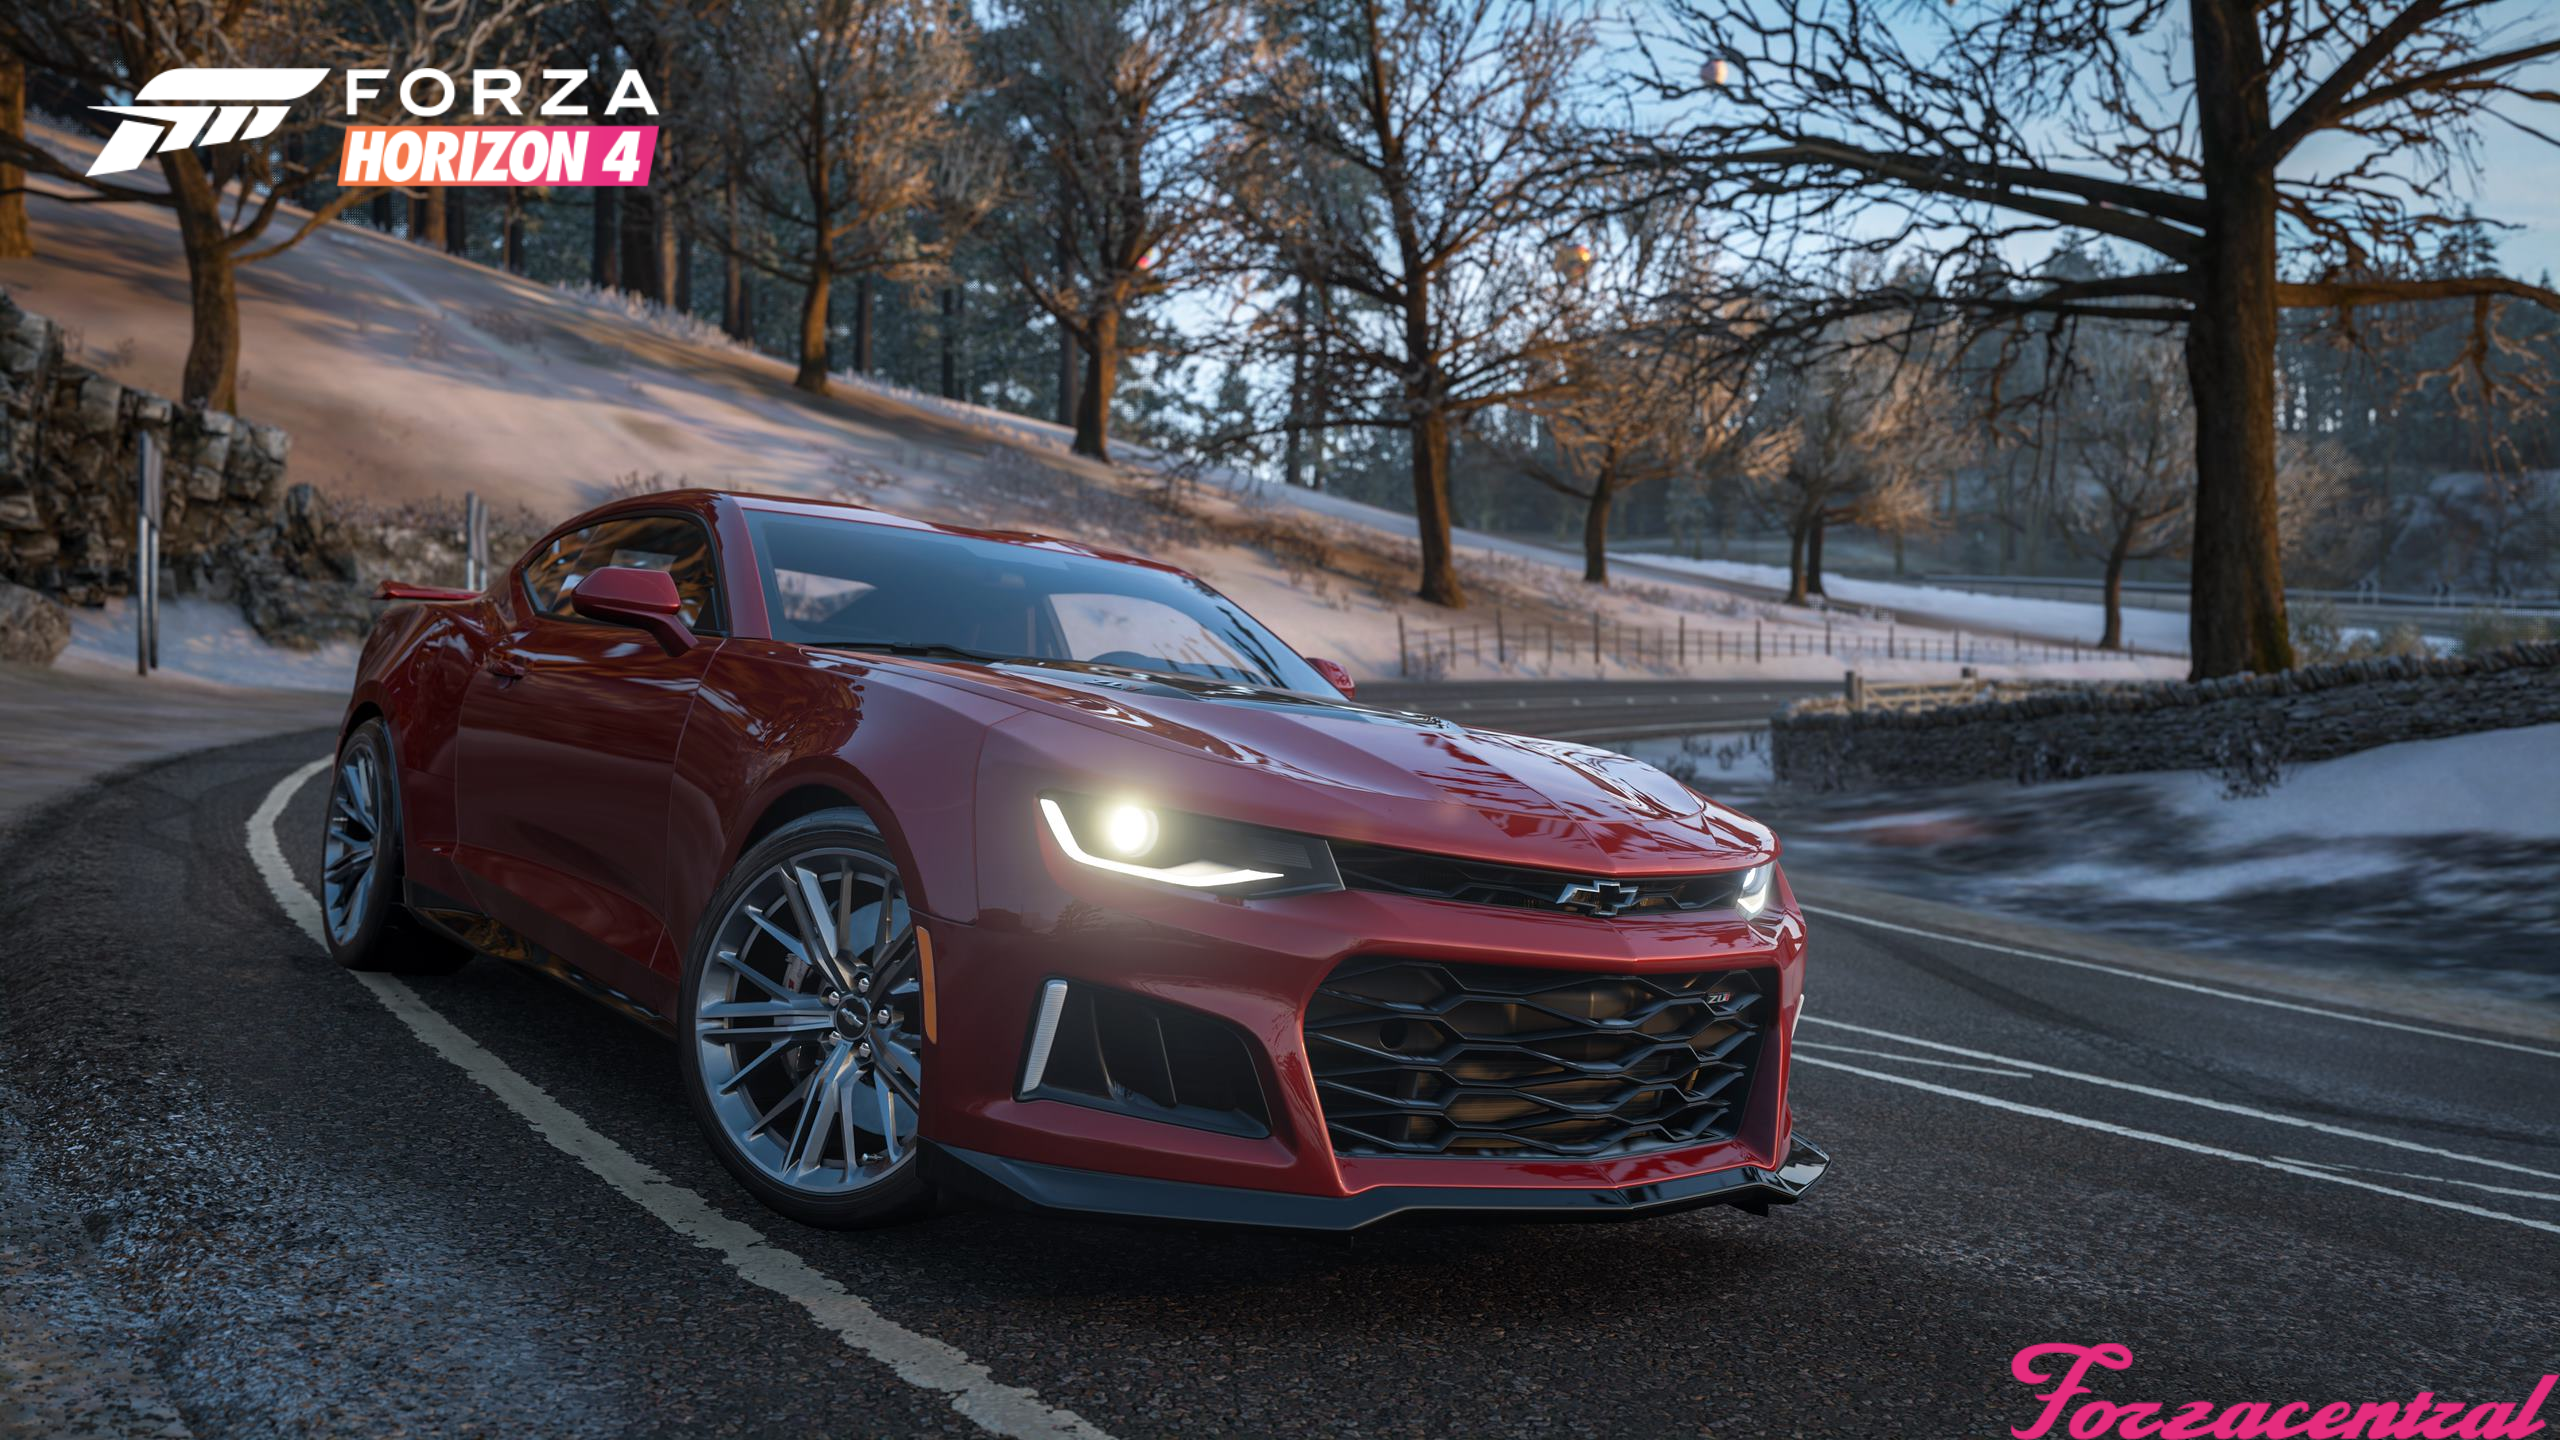 Fh4 Forza Horizon 4 Vehicle List Wip Updated